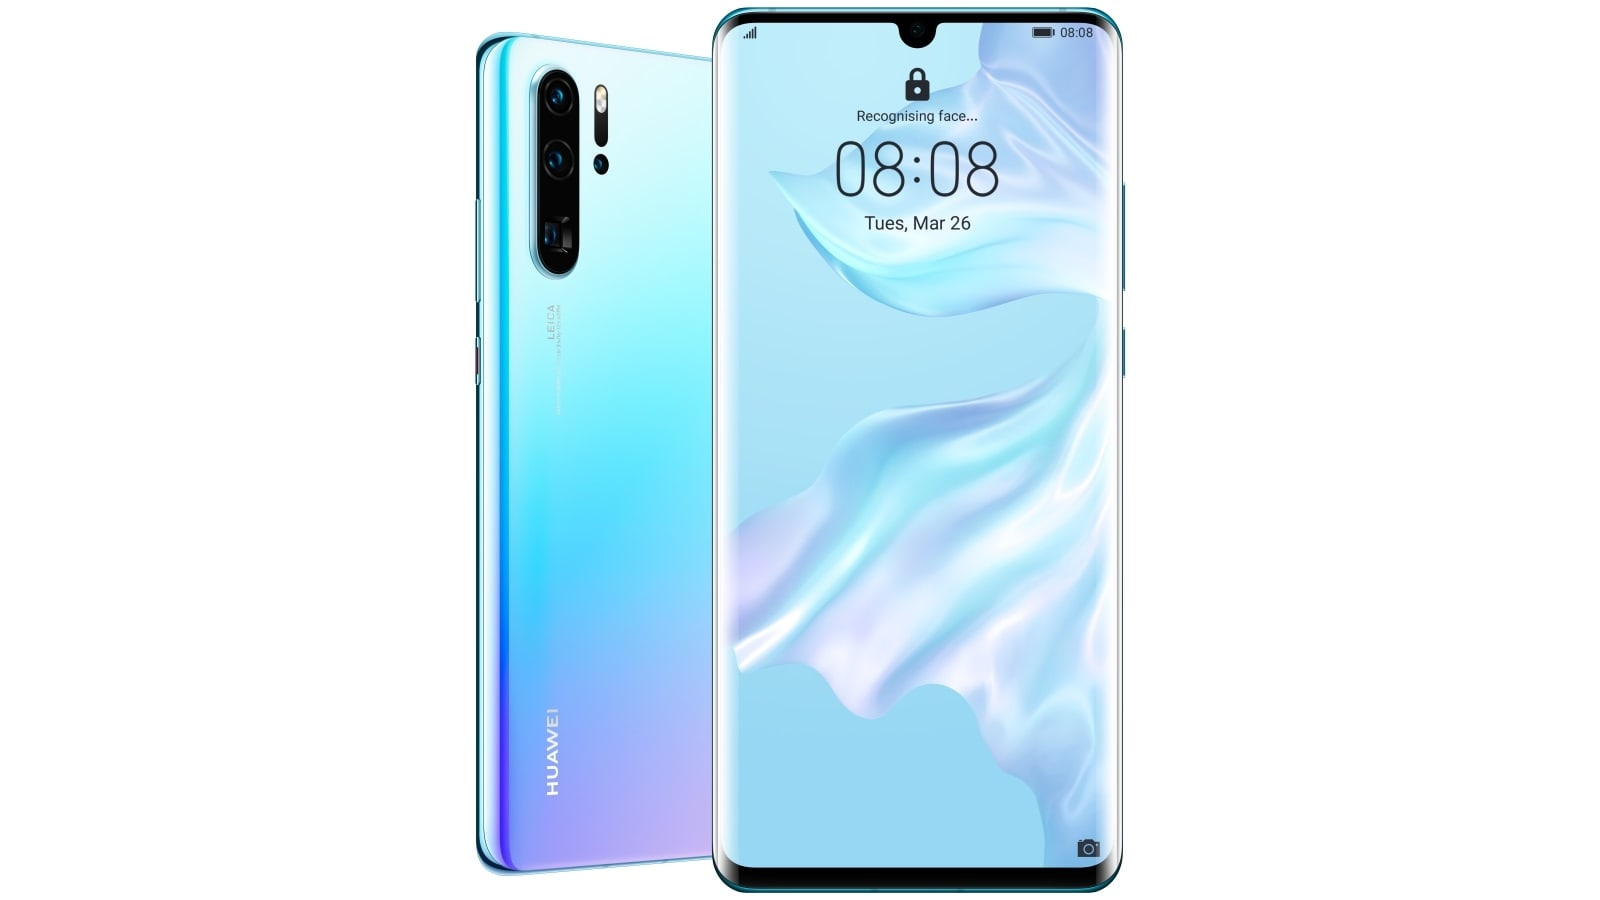 2. Huawei P30 Pro – The Second Best Smartphone of 2019